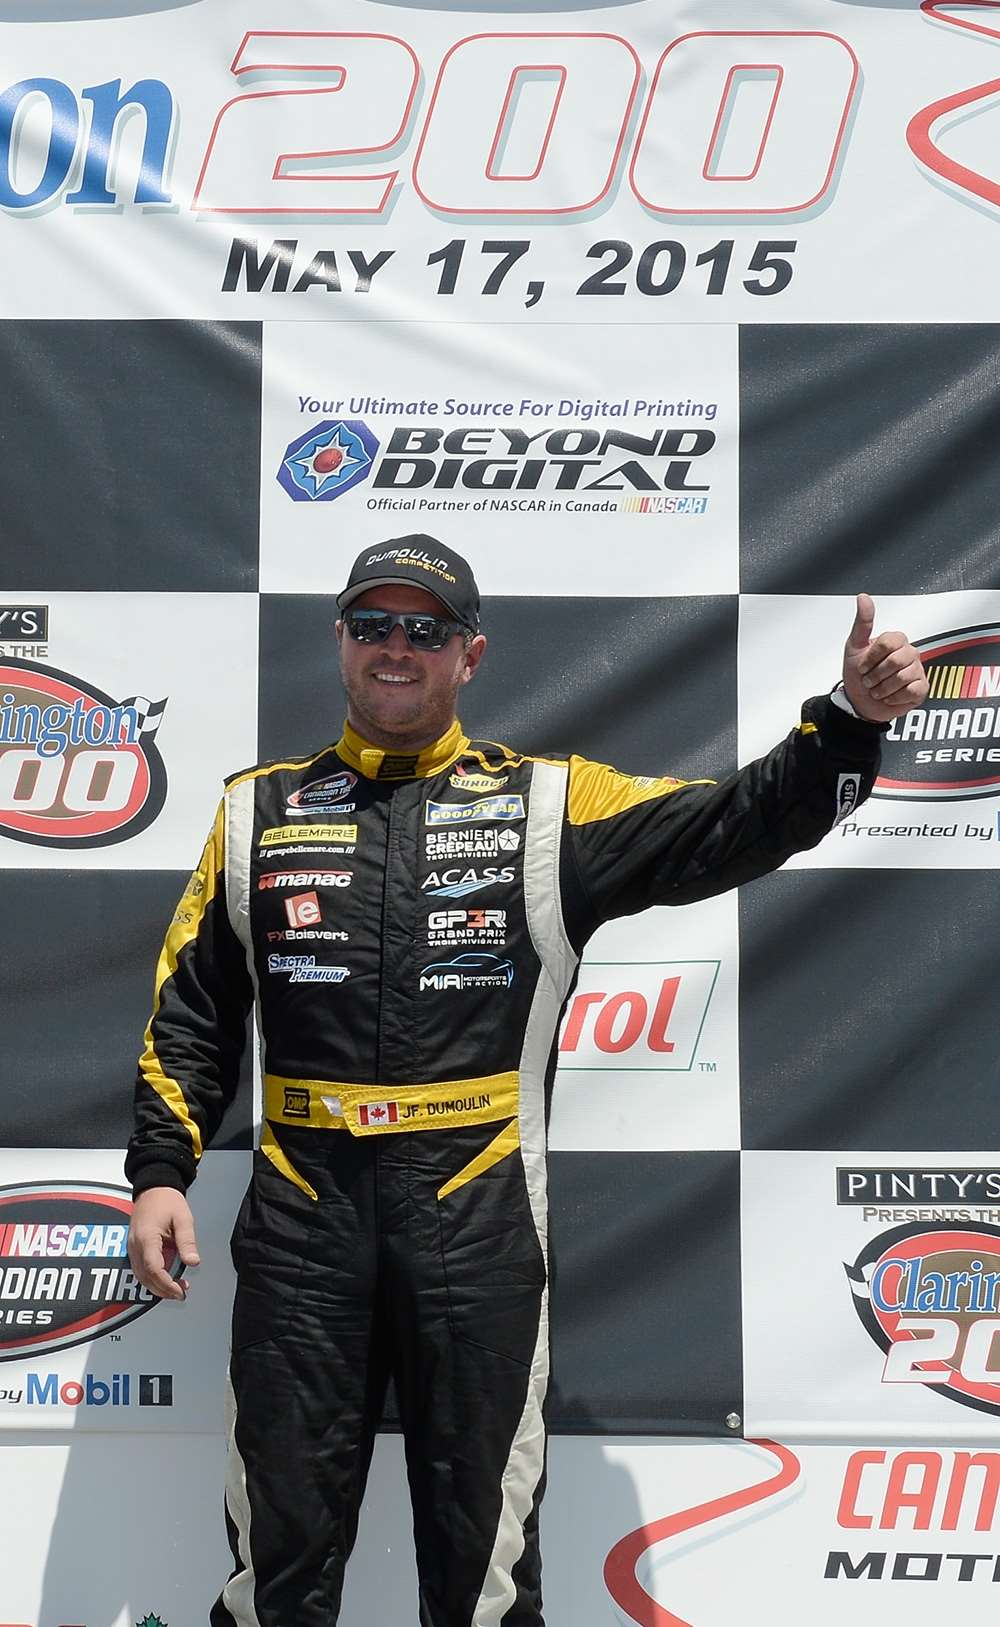 JF Dumoulin gets his first podium in the nascar canadian tire series